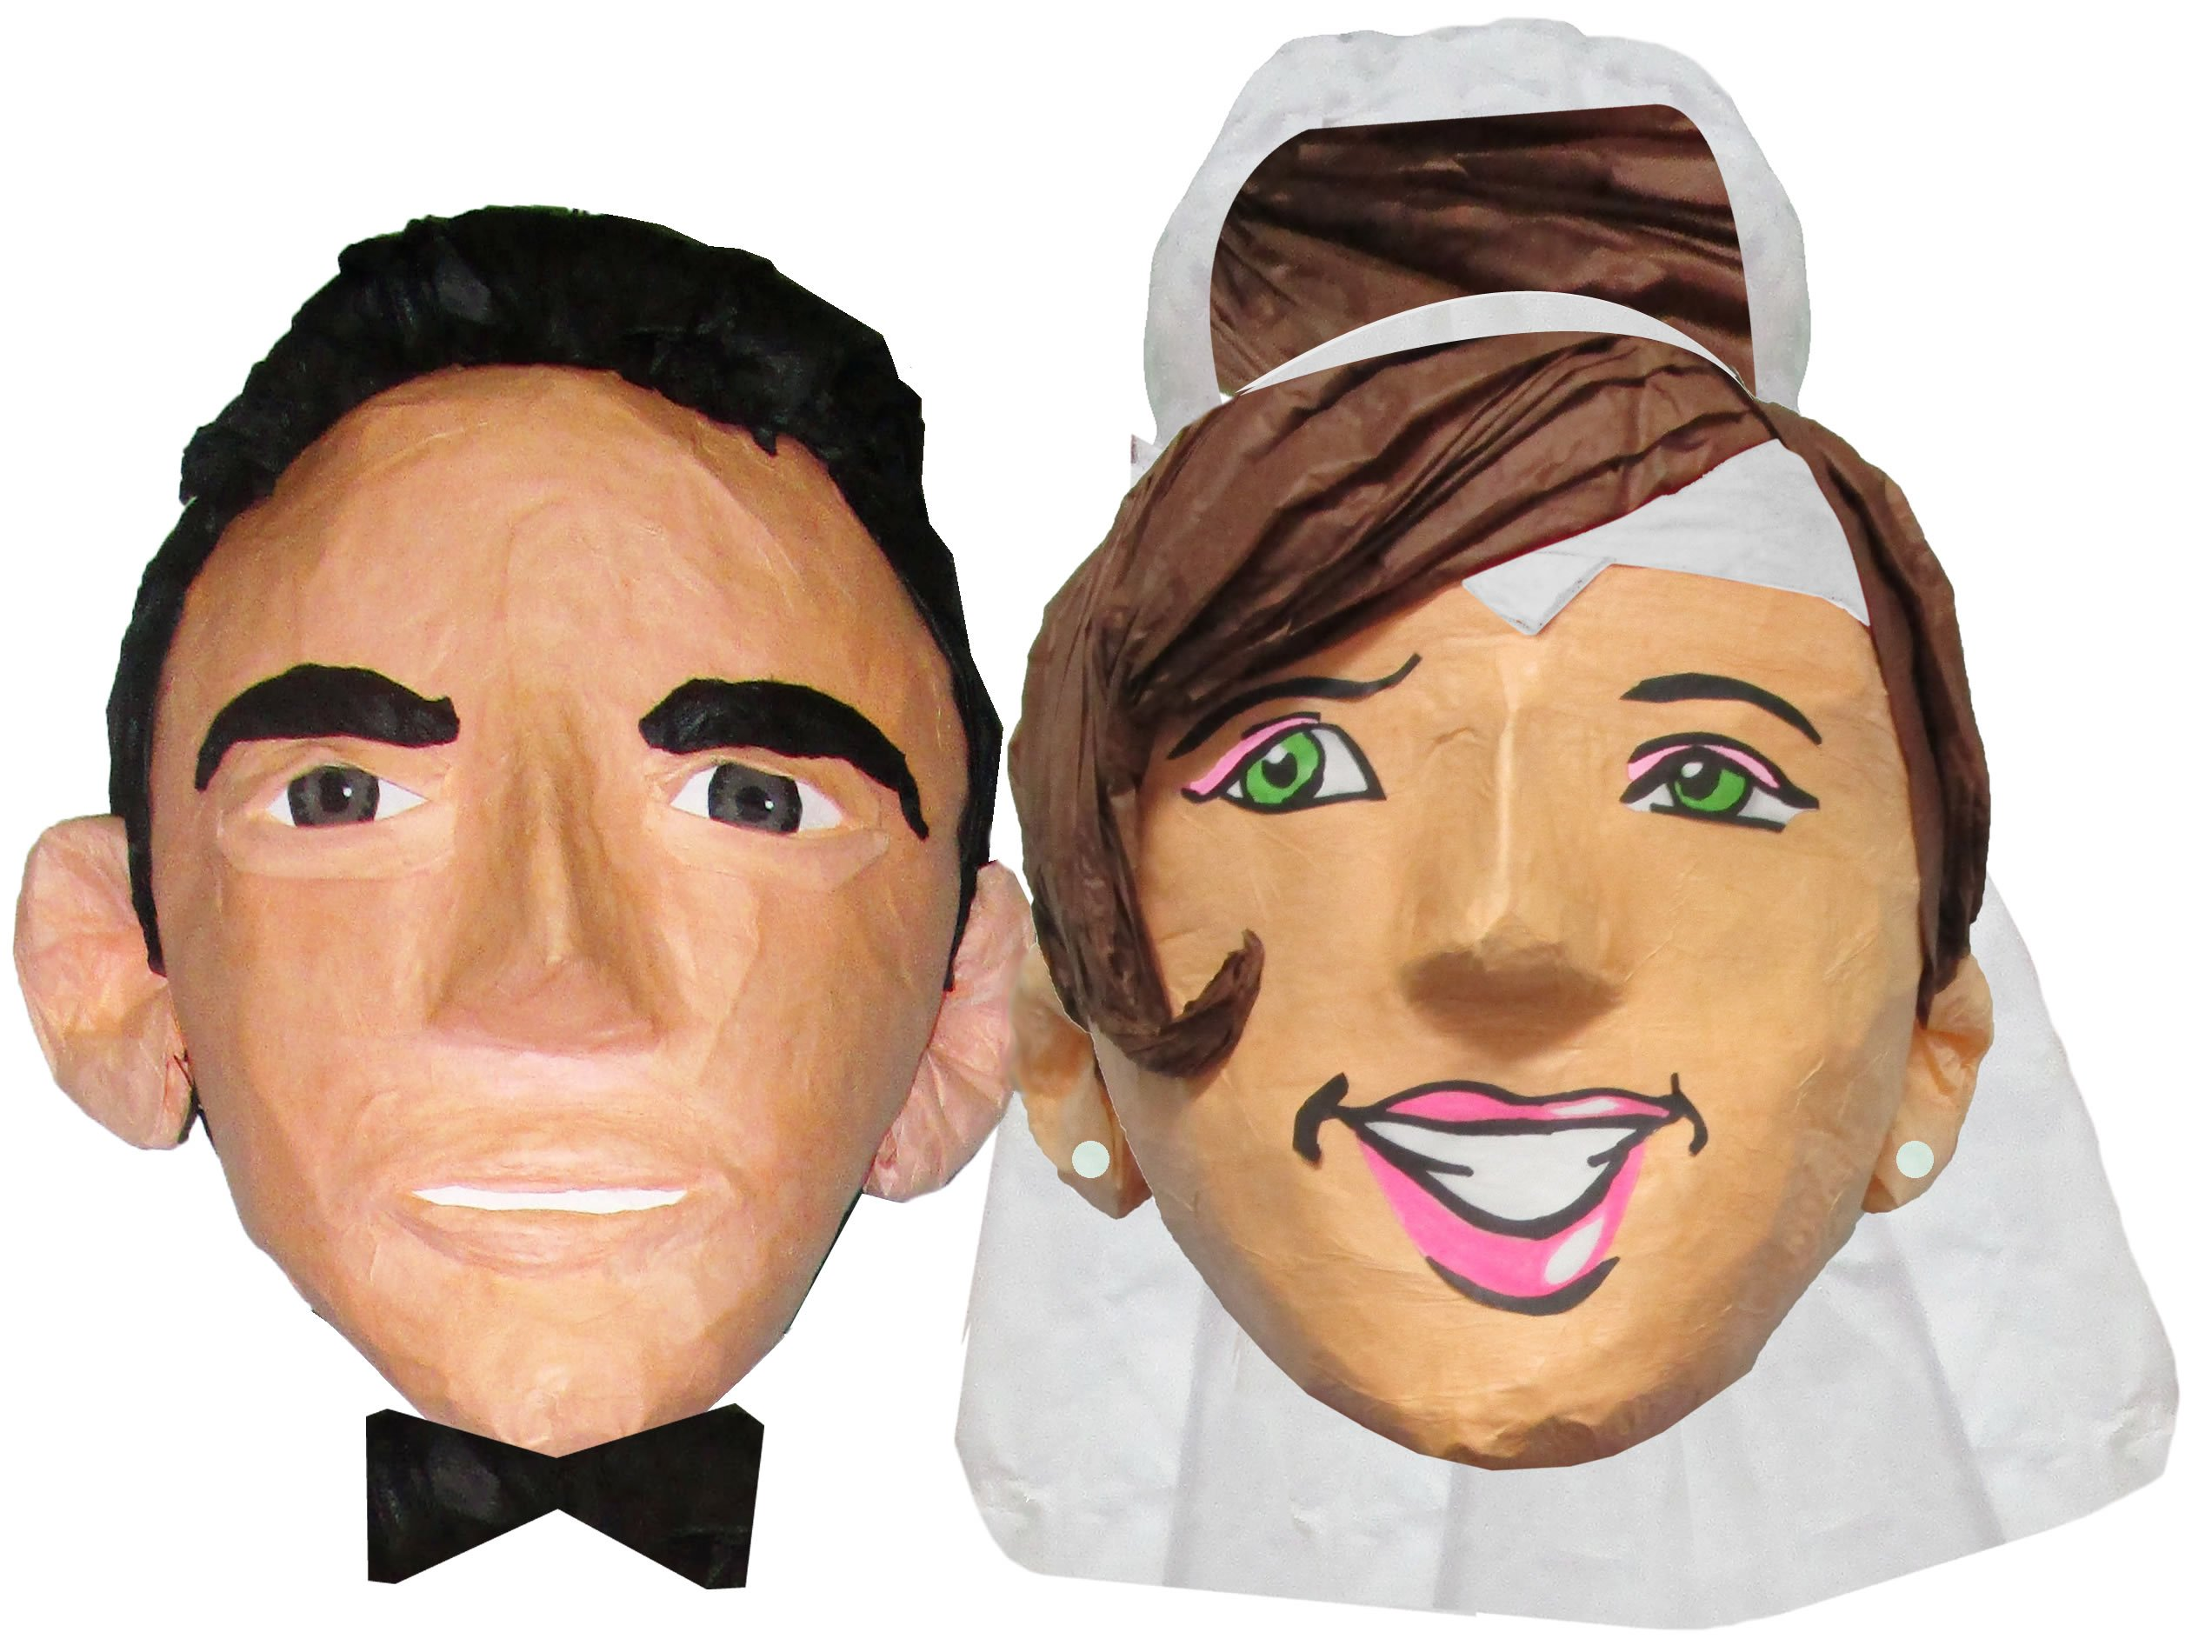 Custom Wedding Couple Bride and Groom Pinata, Photo Prop, Centerpiece Decoration and Party Game (Super Size, Heads) by Pinatas.com